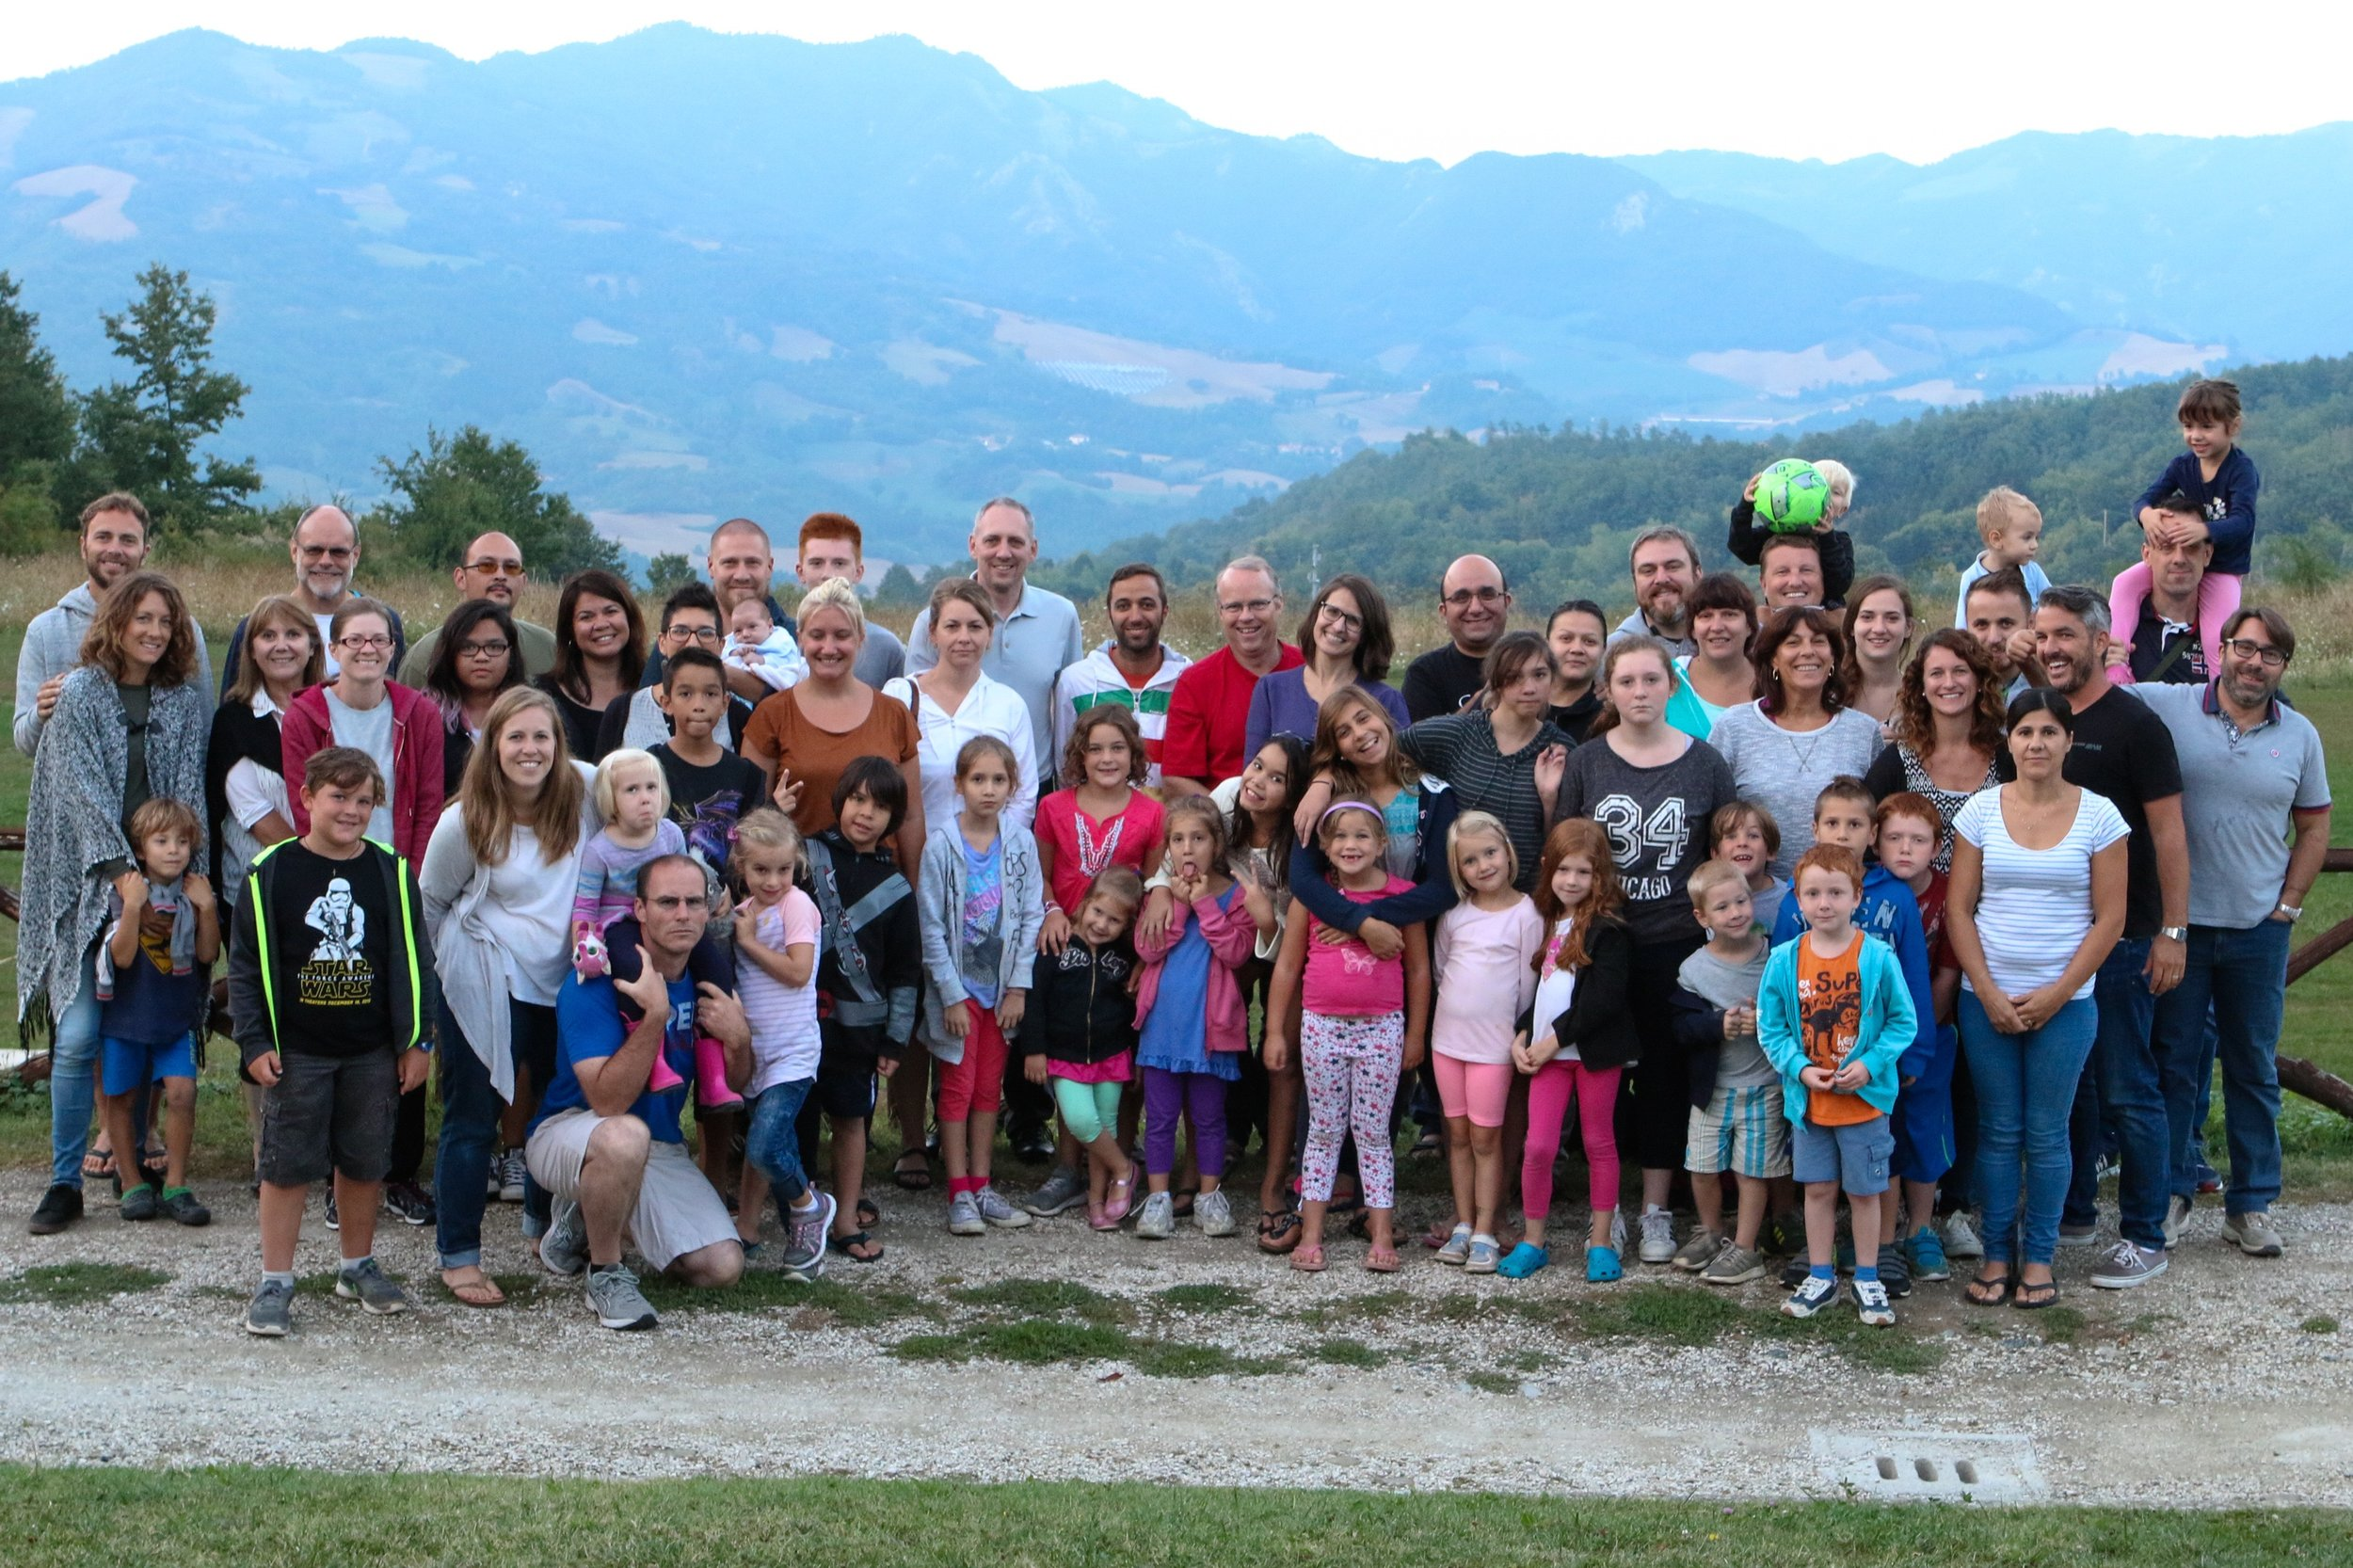 Italy Church Planters Family Retreat IMPATTO- This was such a fun and encouraging time for our Pioneers team to be with other church planters and their families here in Italy. The kids so enjoyed being together, seeing old friends and making new ones! These relationships are so important for them as they grow up. Considering that each part of Italy where they live has an evangelical presence that is less than 1% they may be the one believing family in their neighborhood, school or even whole town. Pray that Jesus would capture and drive the hearts of these children and make them lights to those around them.